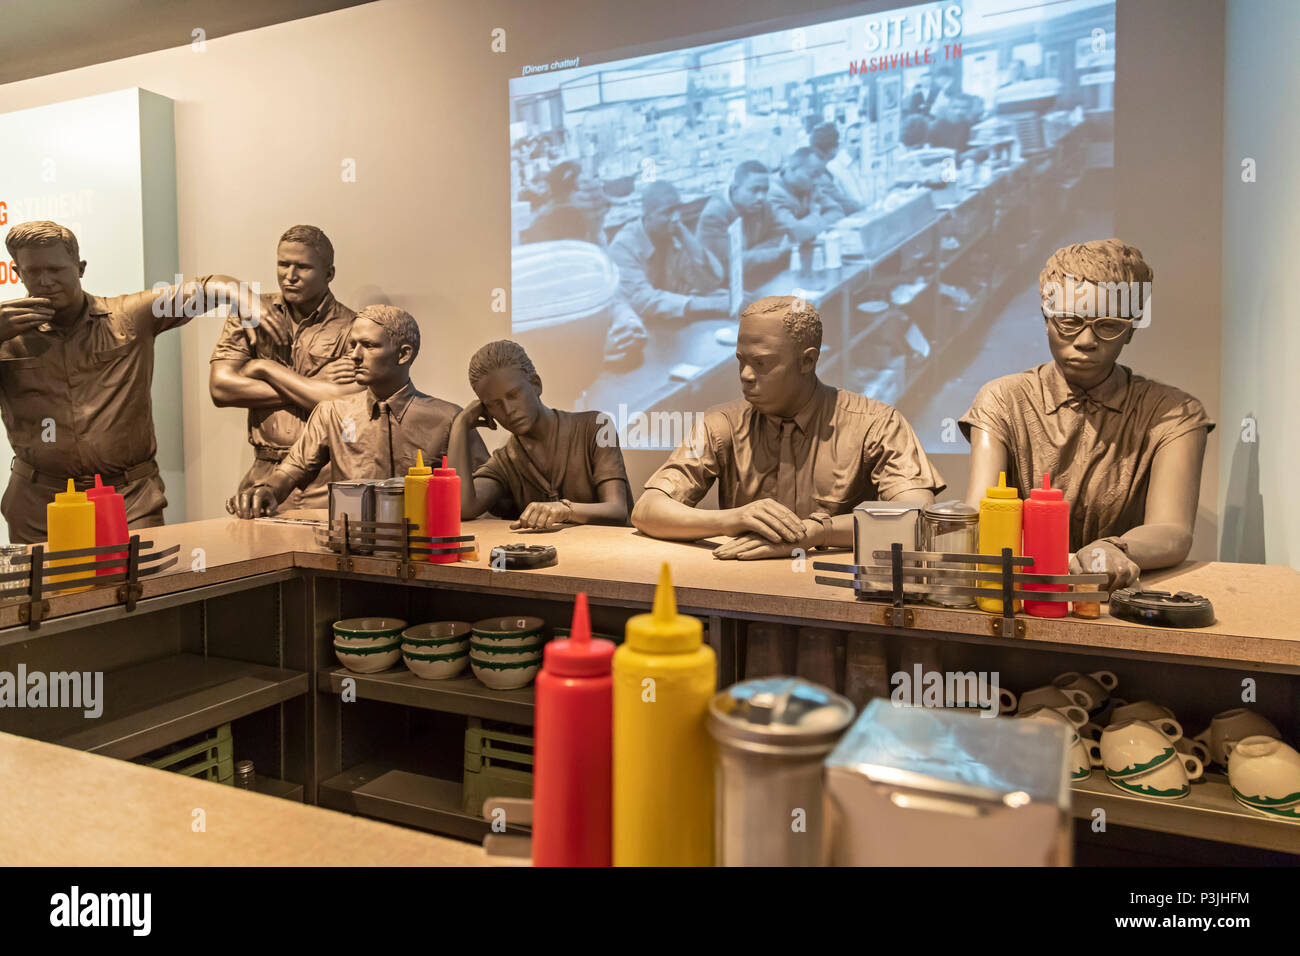 Memphis, Tennessee - The National Civil Rights Museum at the Lorraine Motel, where Martin Luther King, Jr. was assassinated in 1968. A lunch counter t - Stock Image